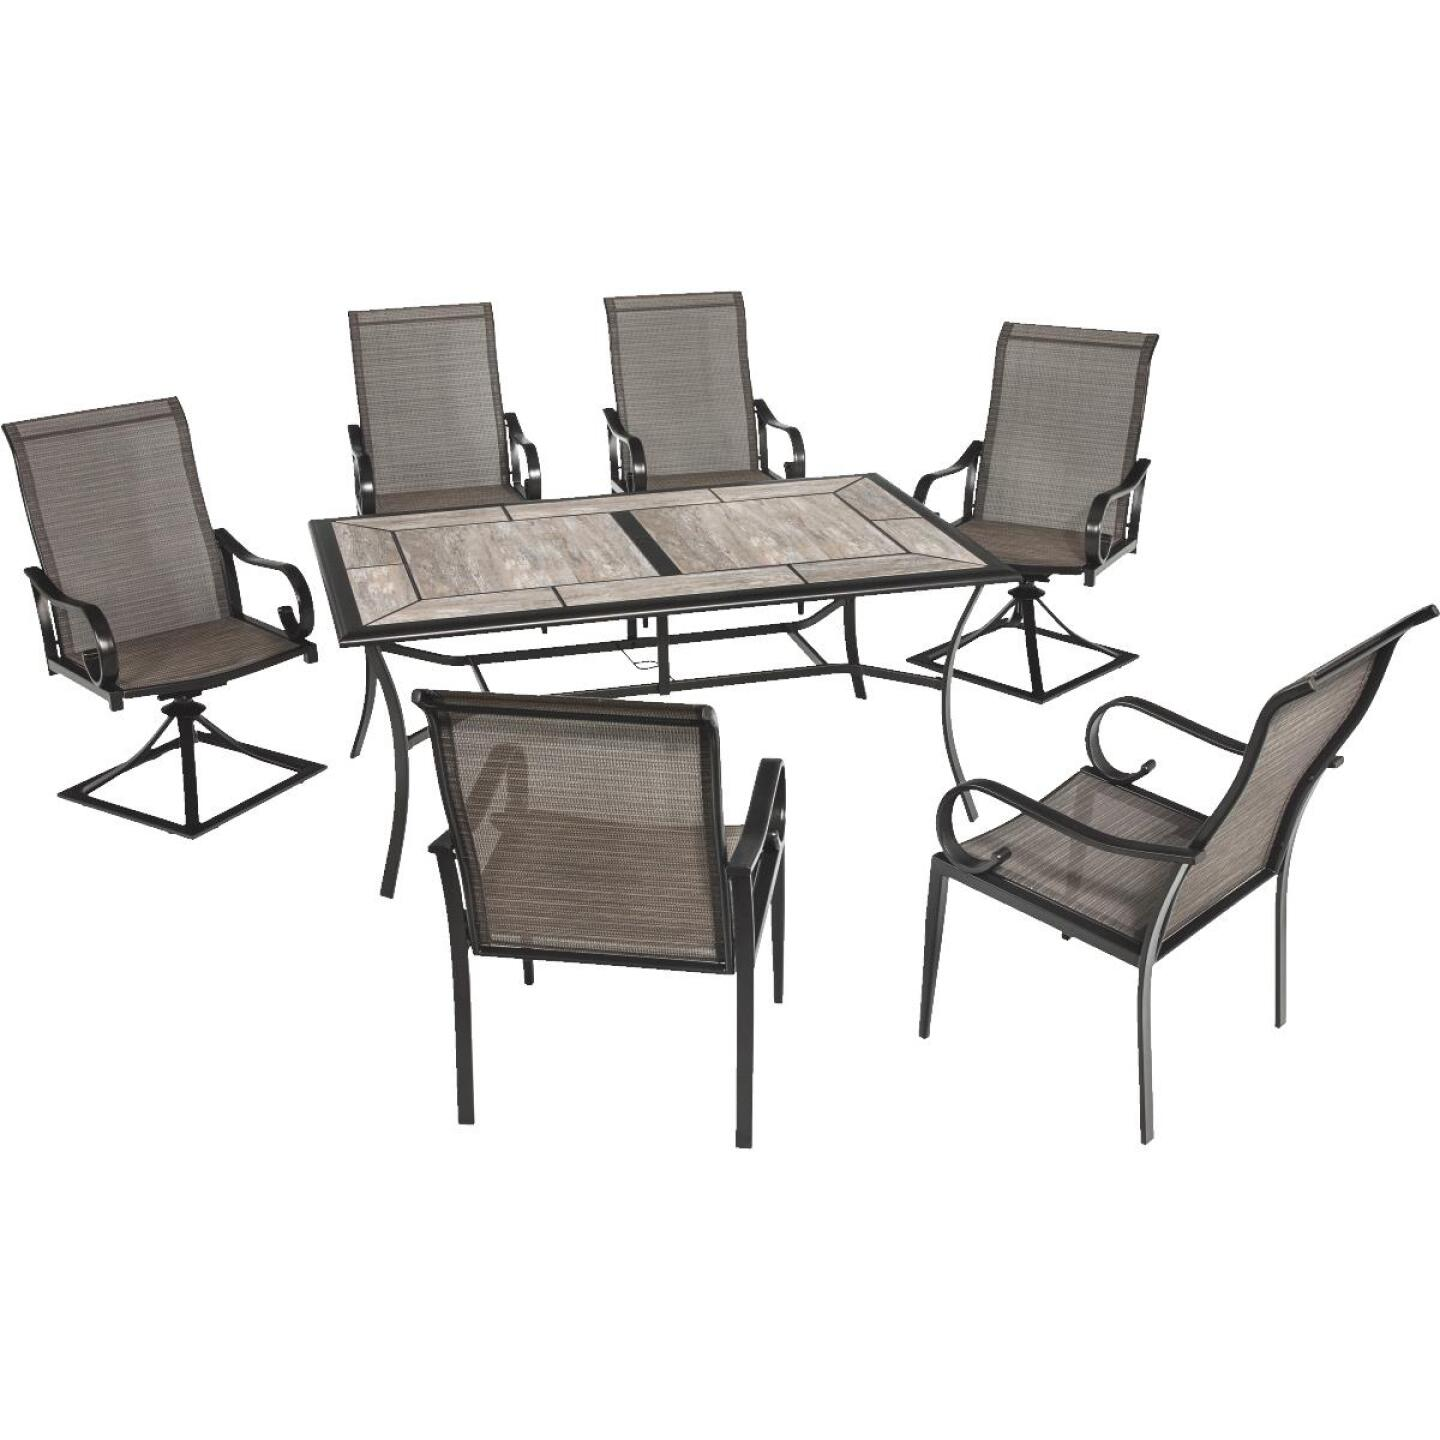 Outdoor Expressions Berkshire 7-Piece Dining Set Image 257